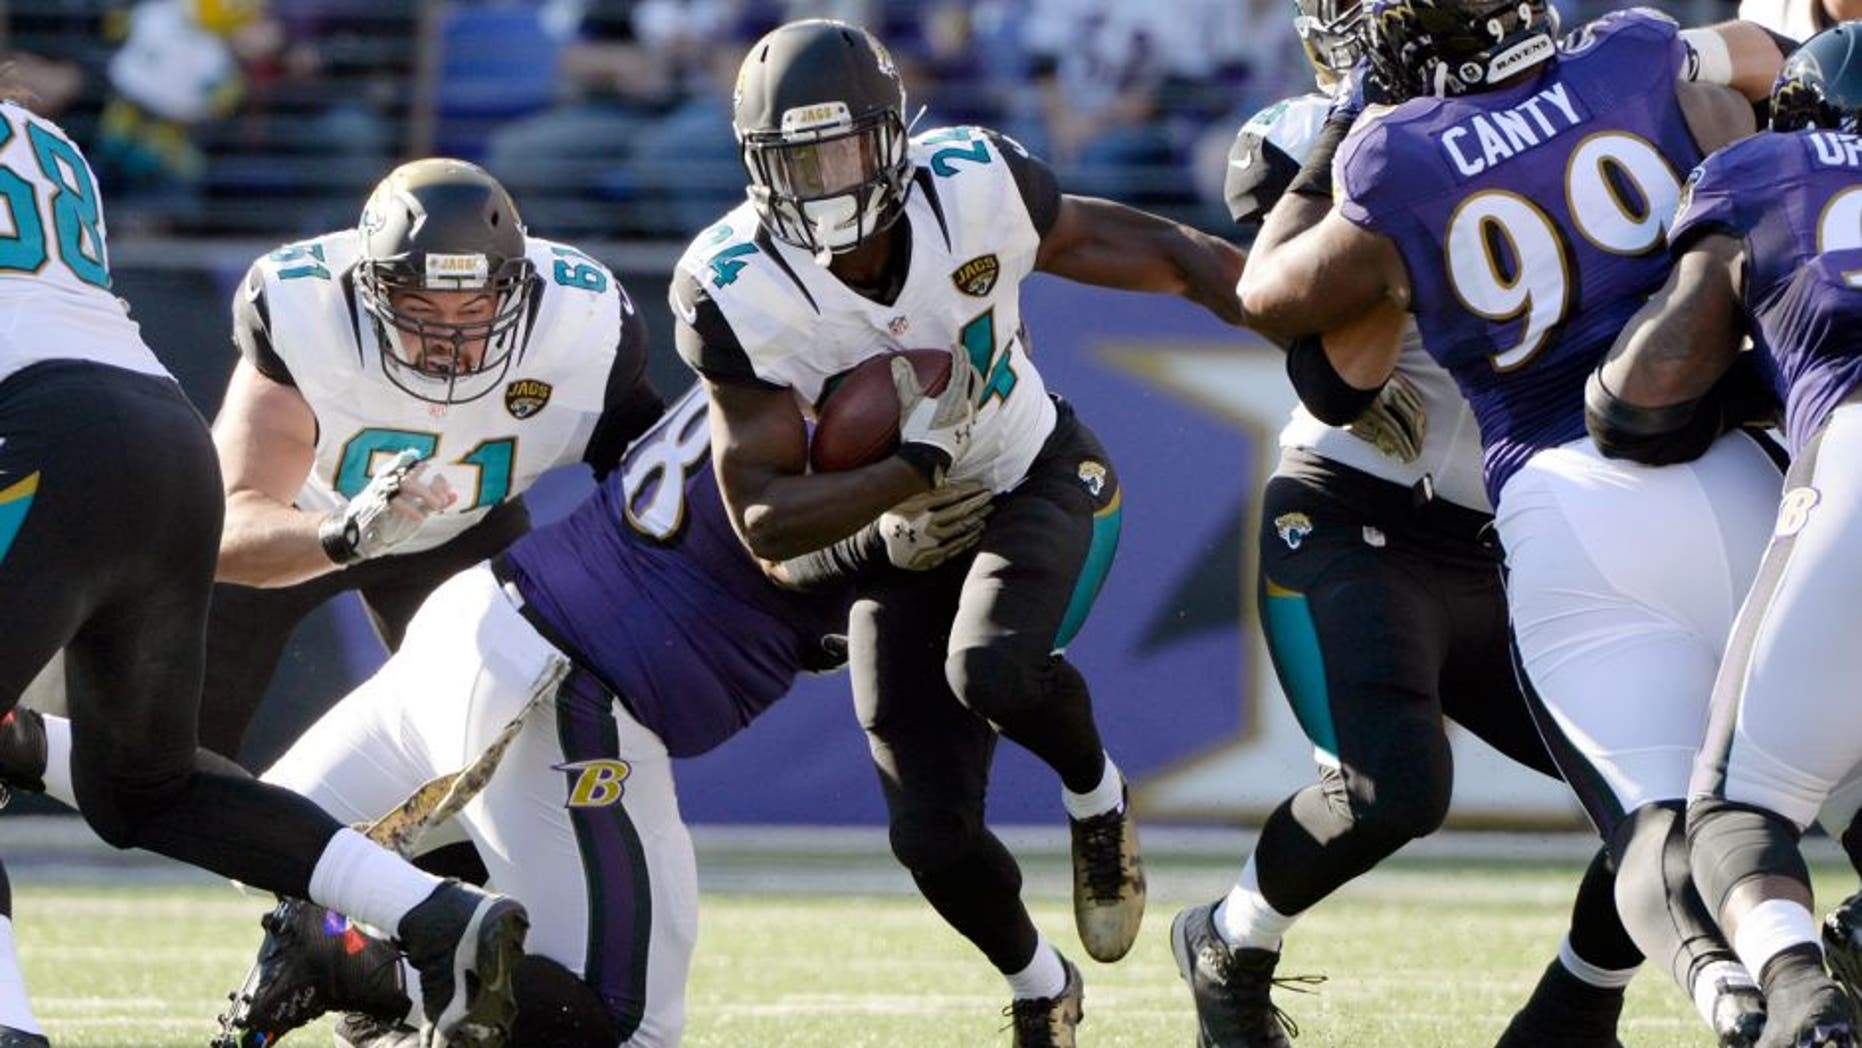 Nov 15, 2015; Baltimore, MD, USA; Jacksonville Jaguars running back T.J. Yeldon (24) runs during the first quarter against the Baltimore Ravens at M&T Bank Stadium. Mandatory Credit: Tommy Gilligan-USA TODAY Sports